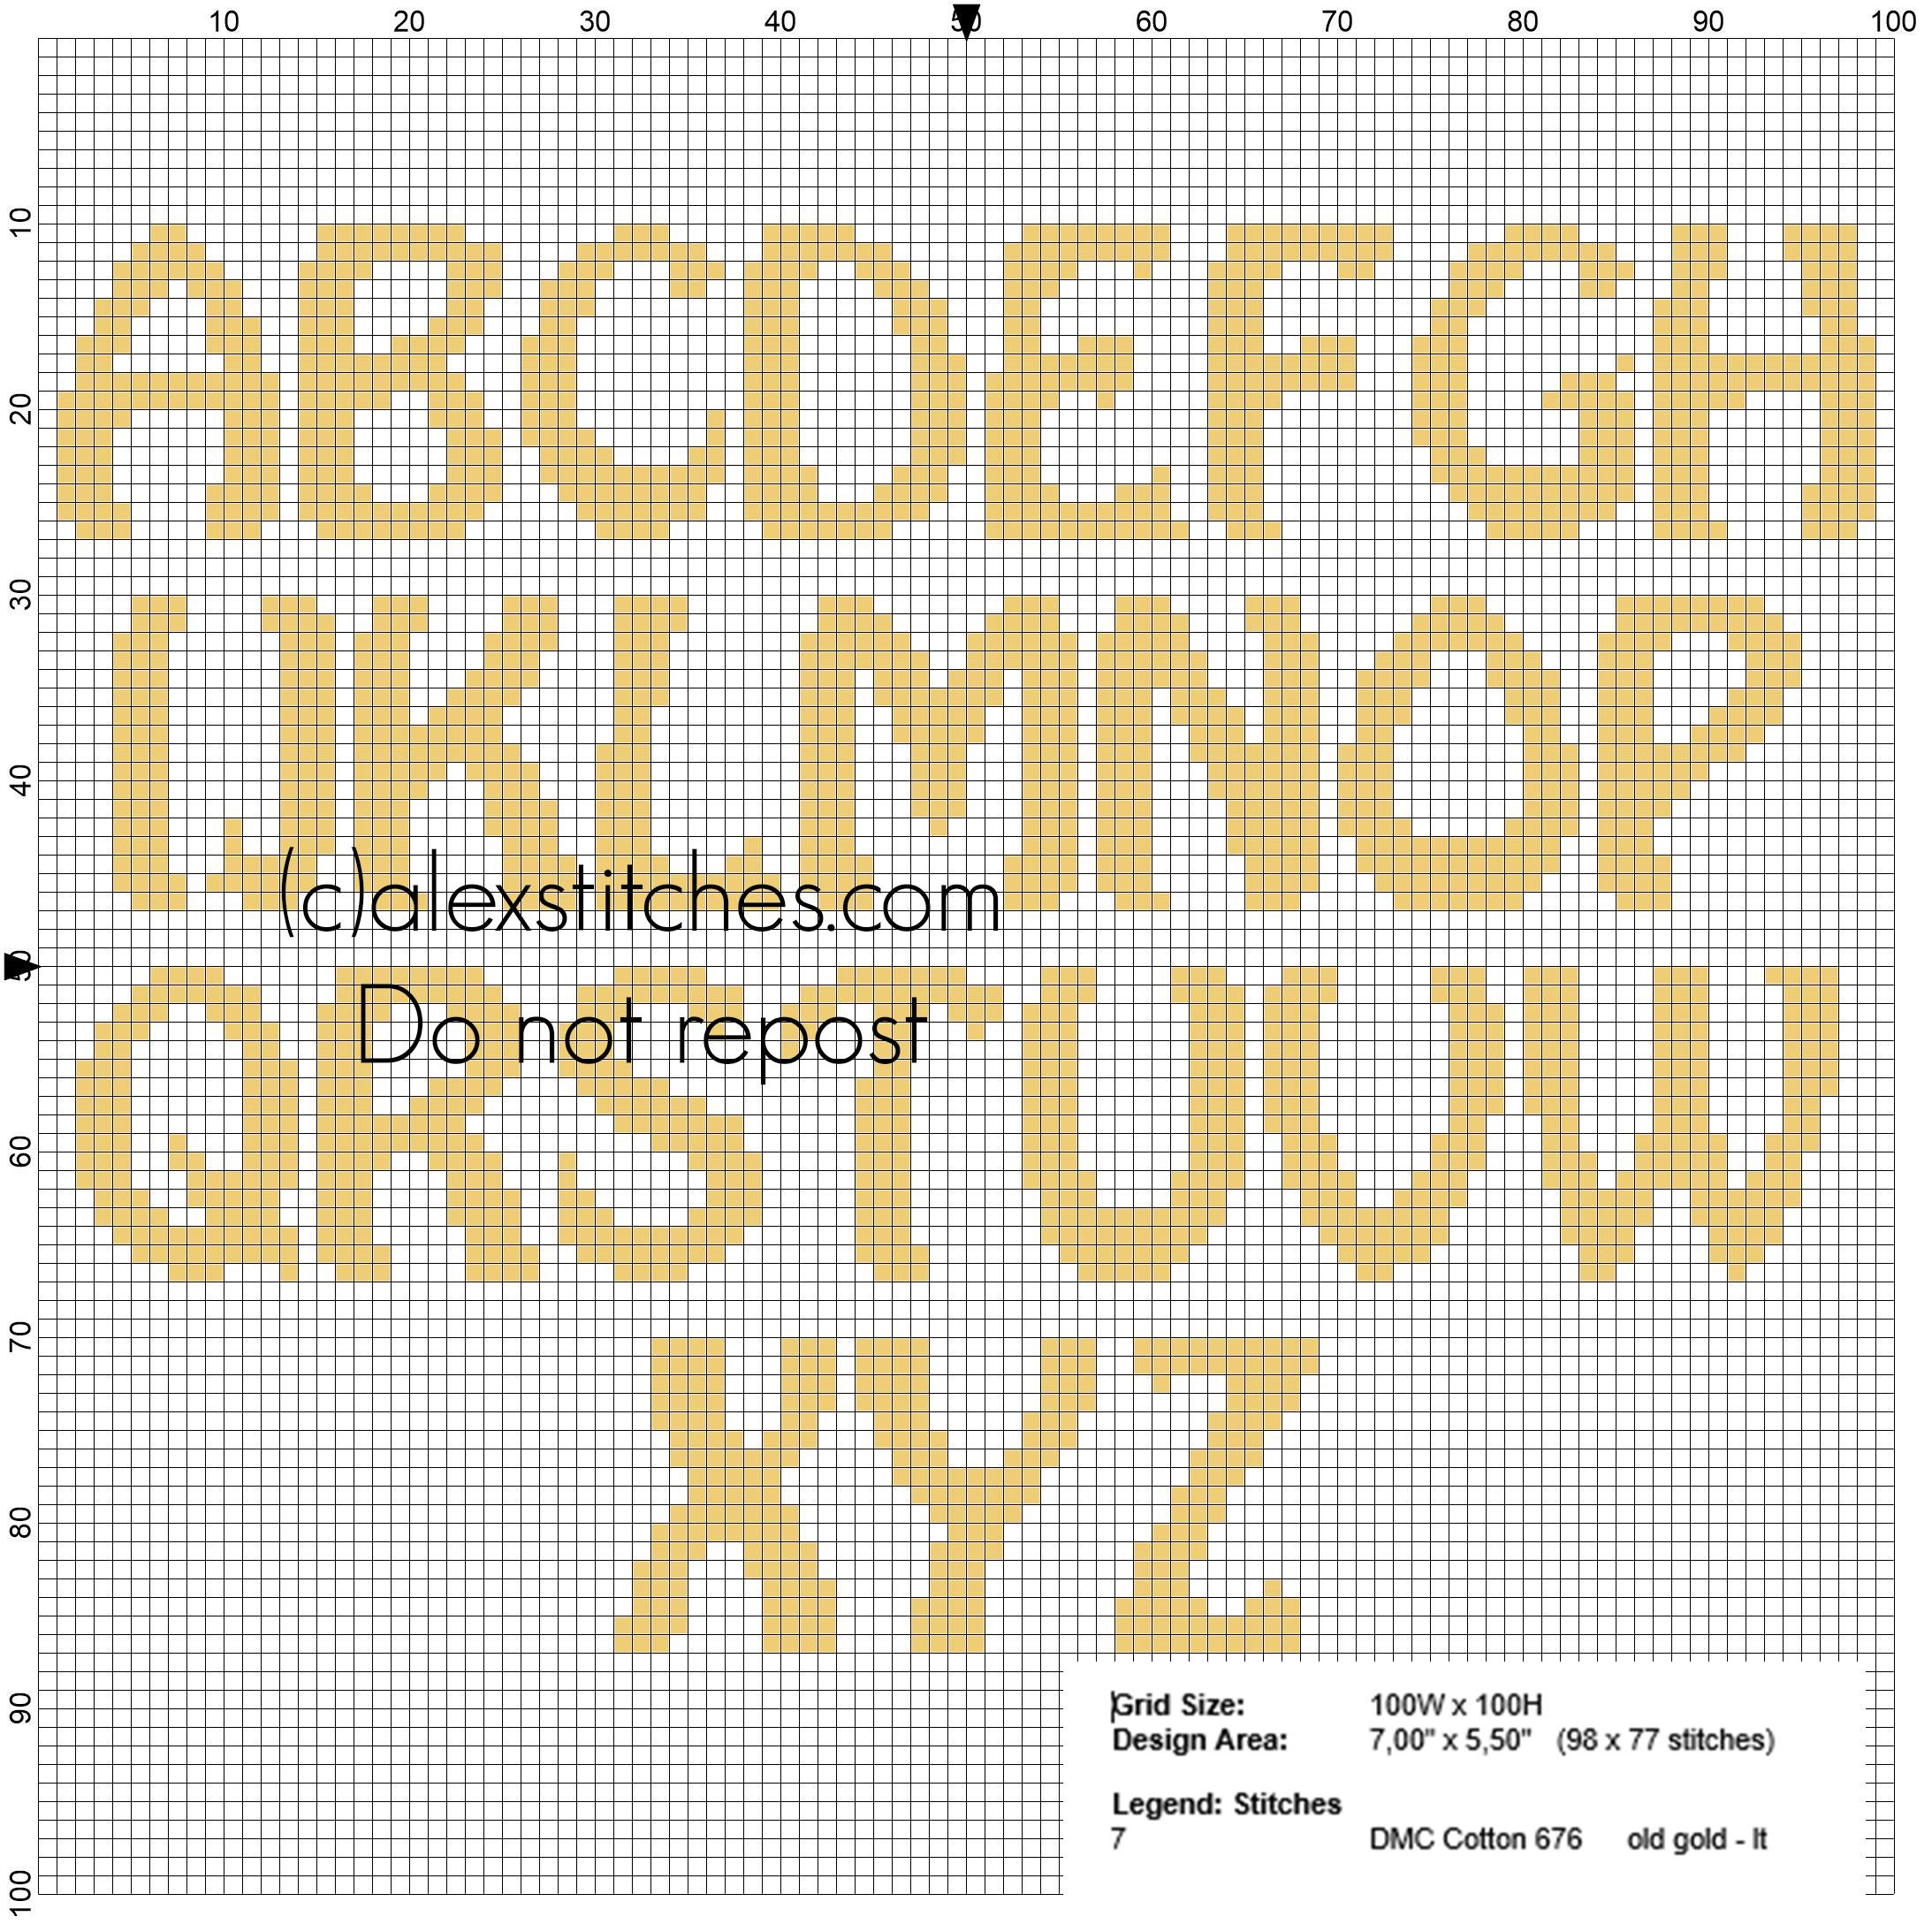 Uppercase Alphabet for cross stitch names with Minions